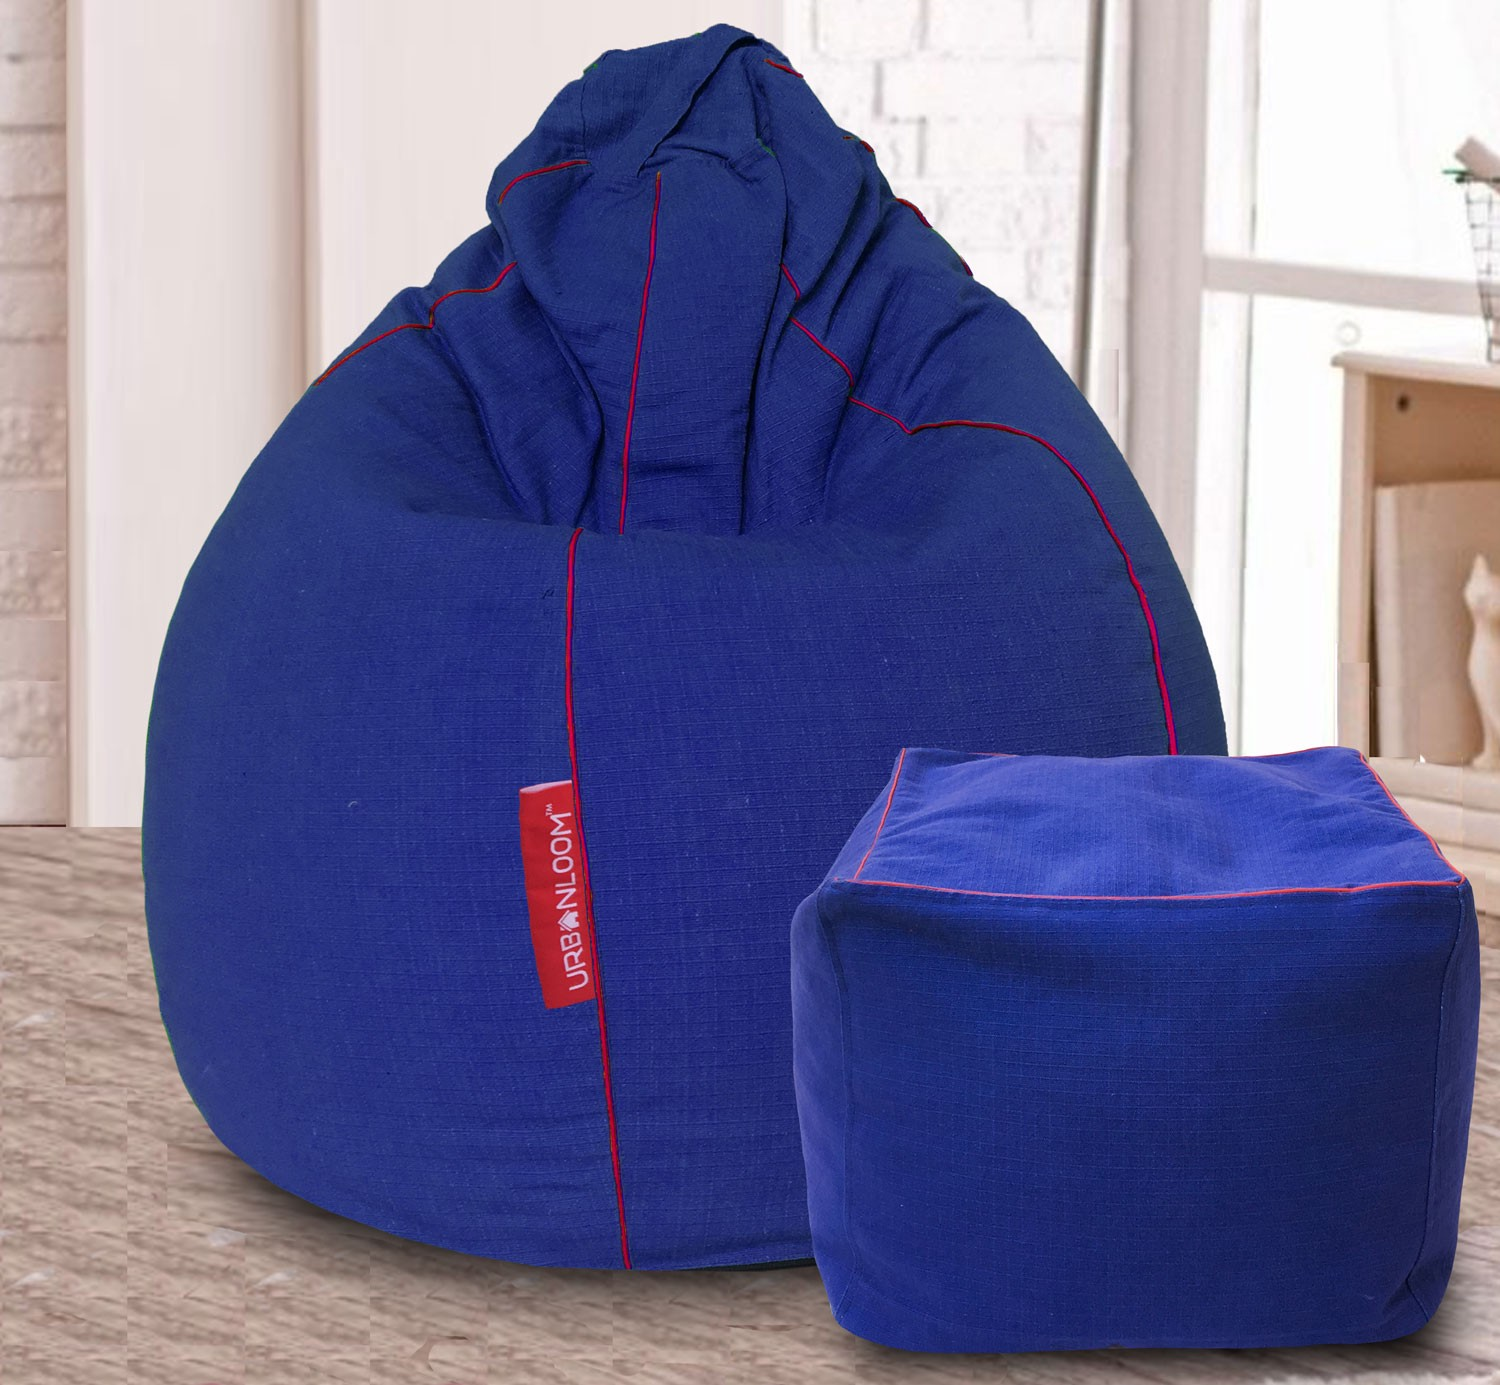 Adult Size Bean Bag Chair How Do I Select The Size Of A Bean Bag Urbanloom Medium